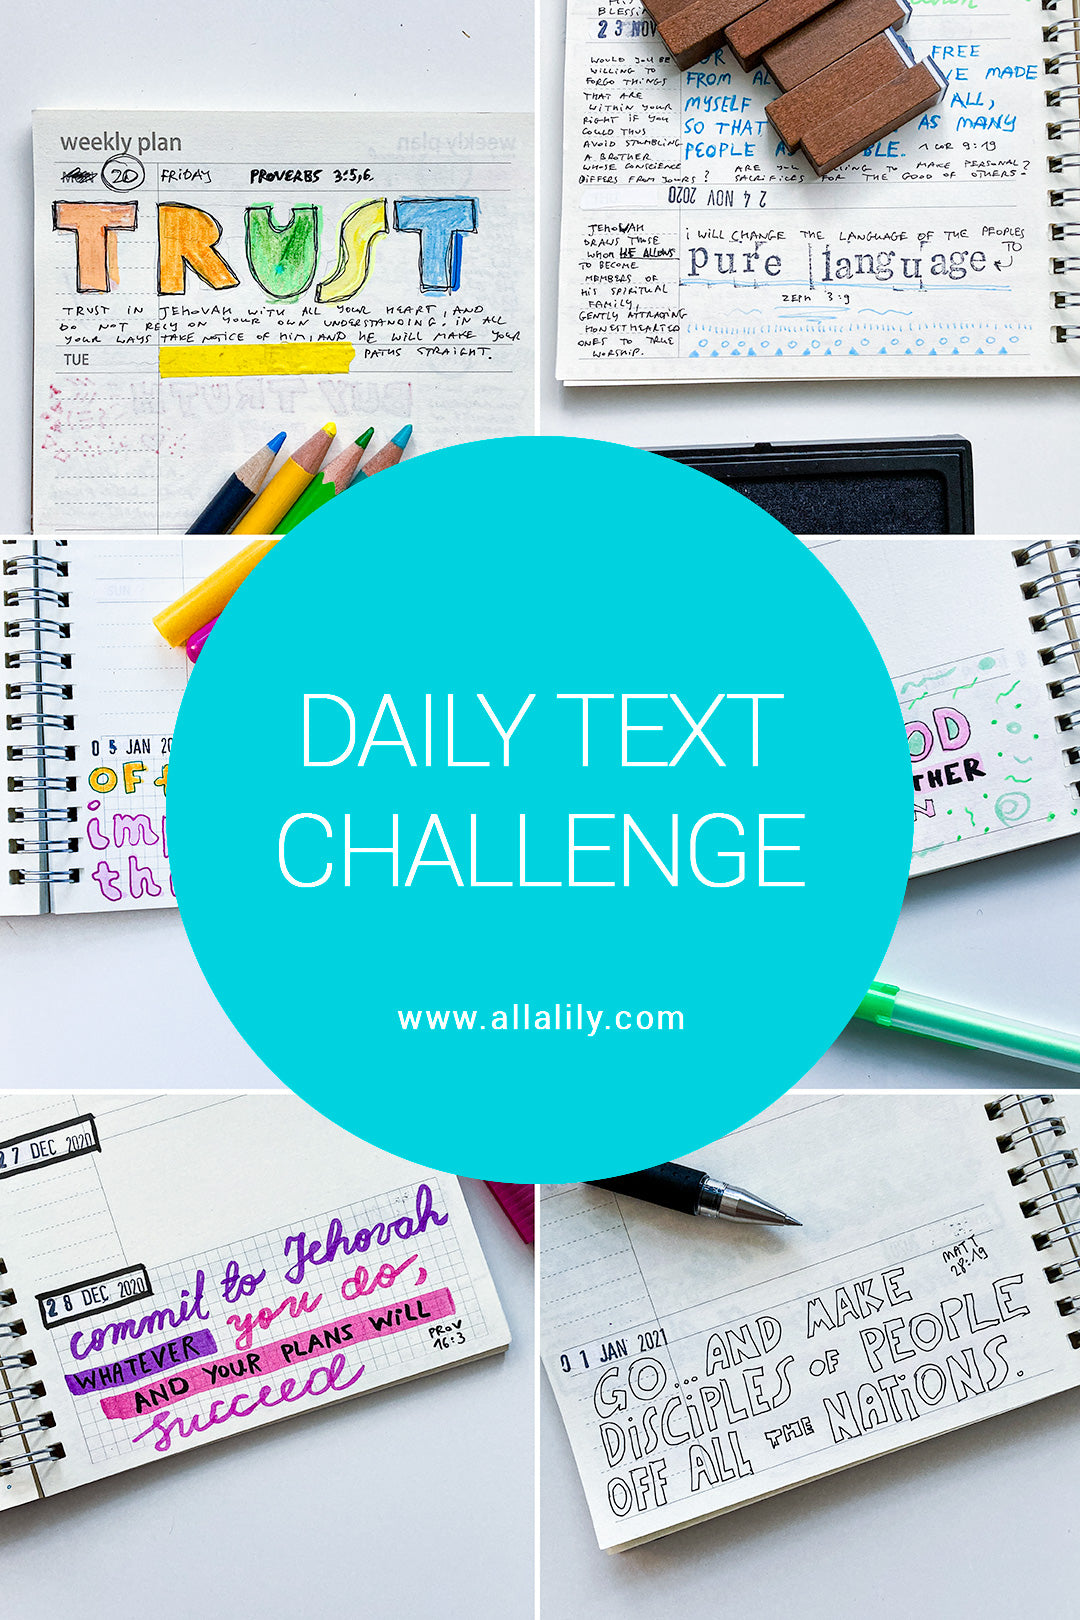 JW daily text challenge